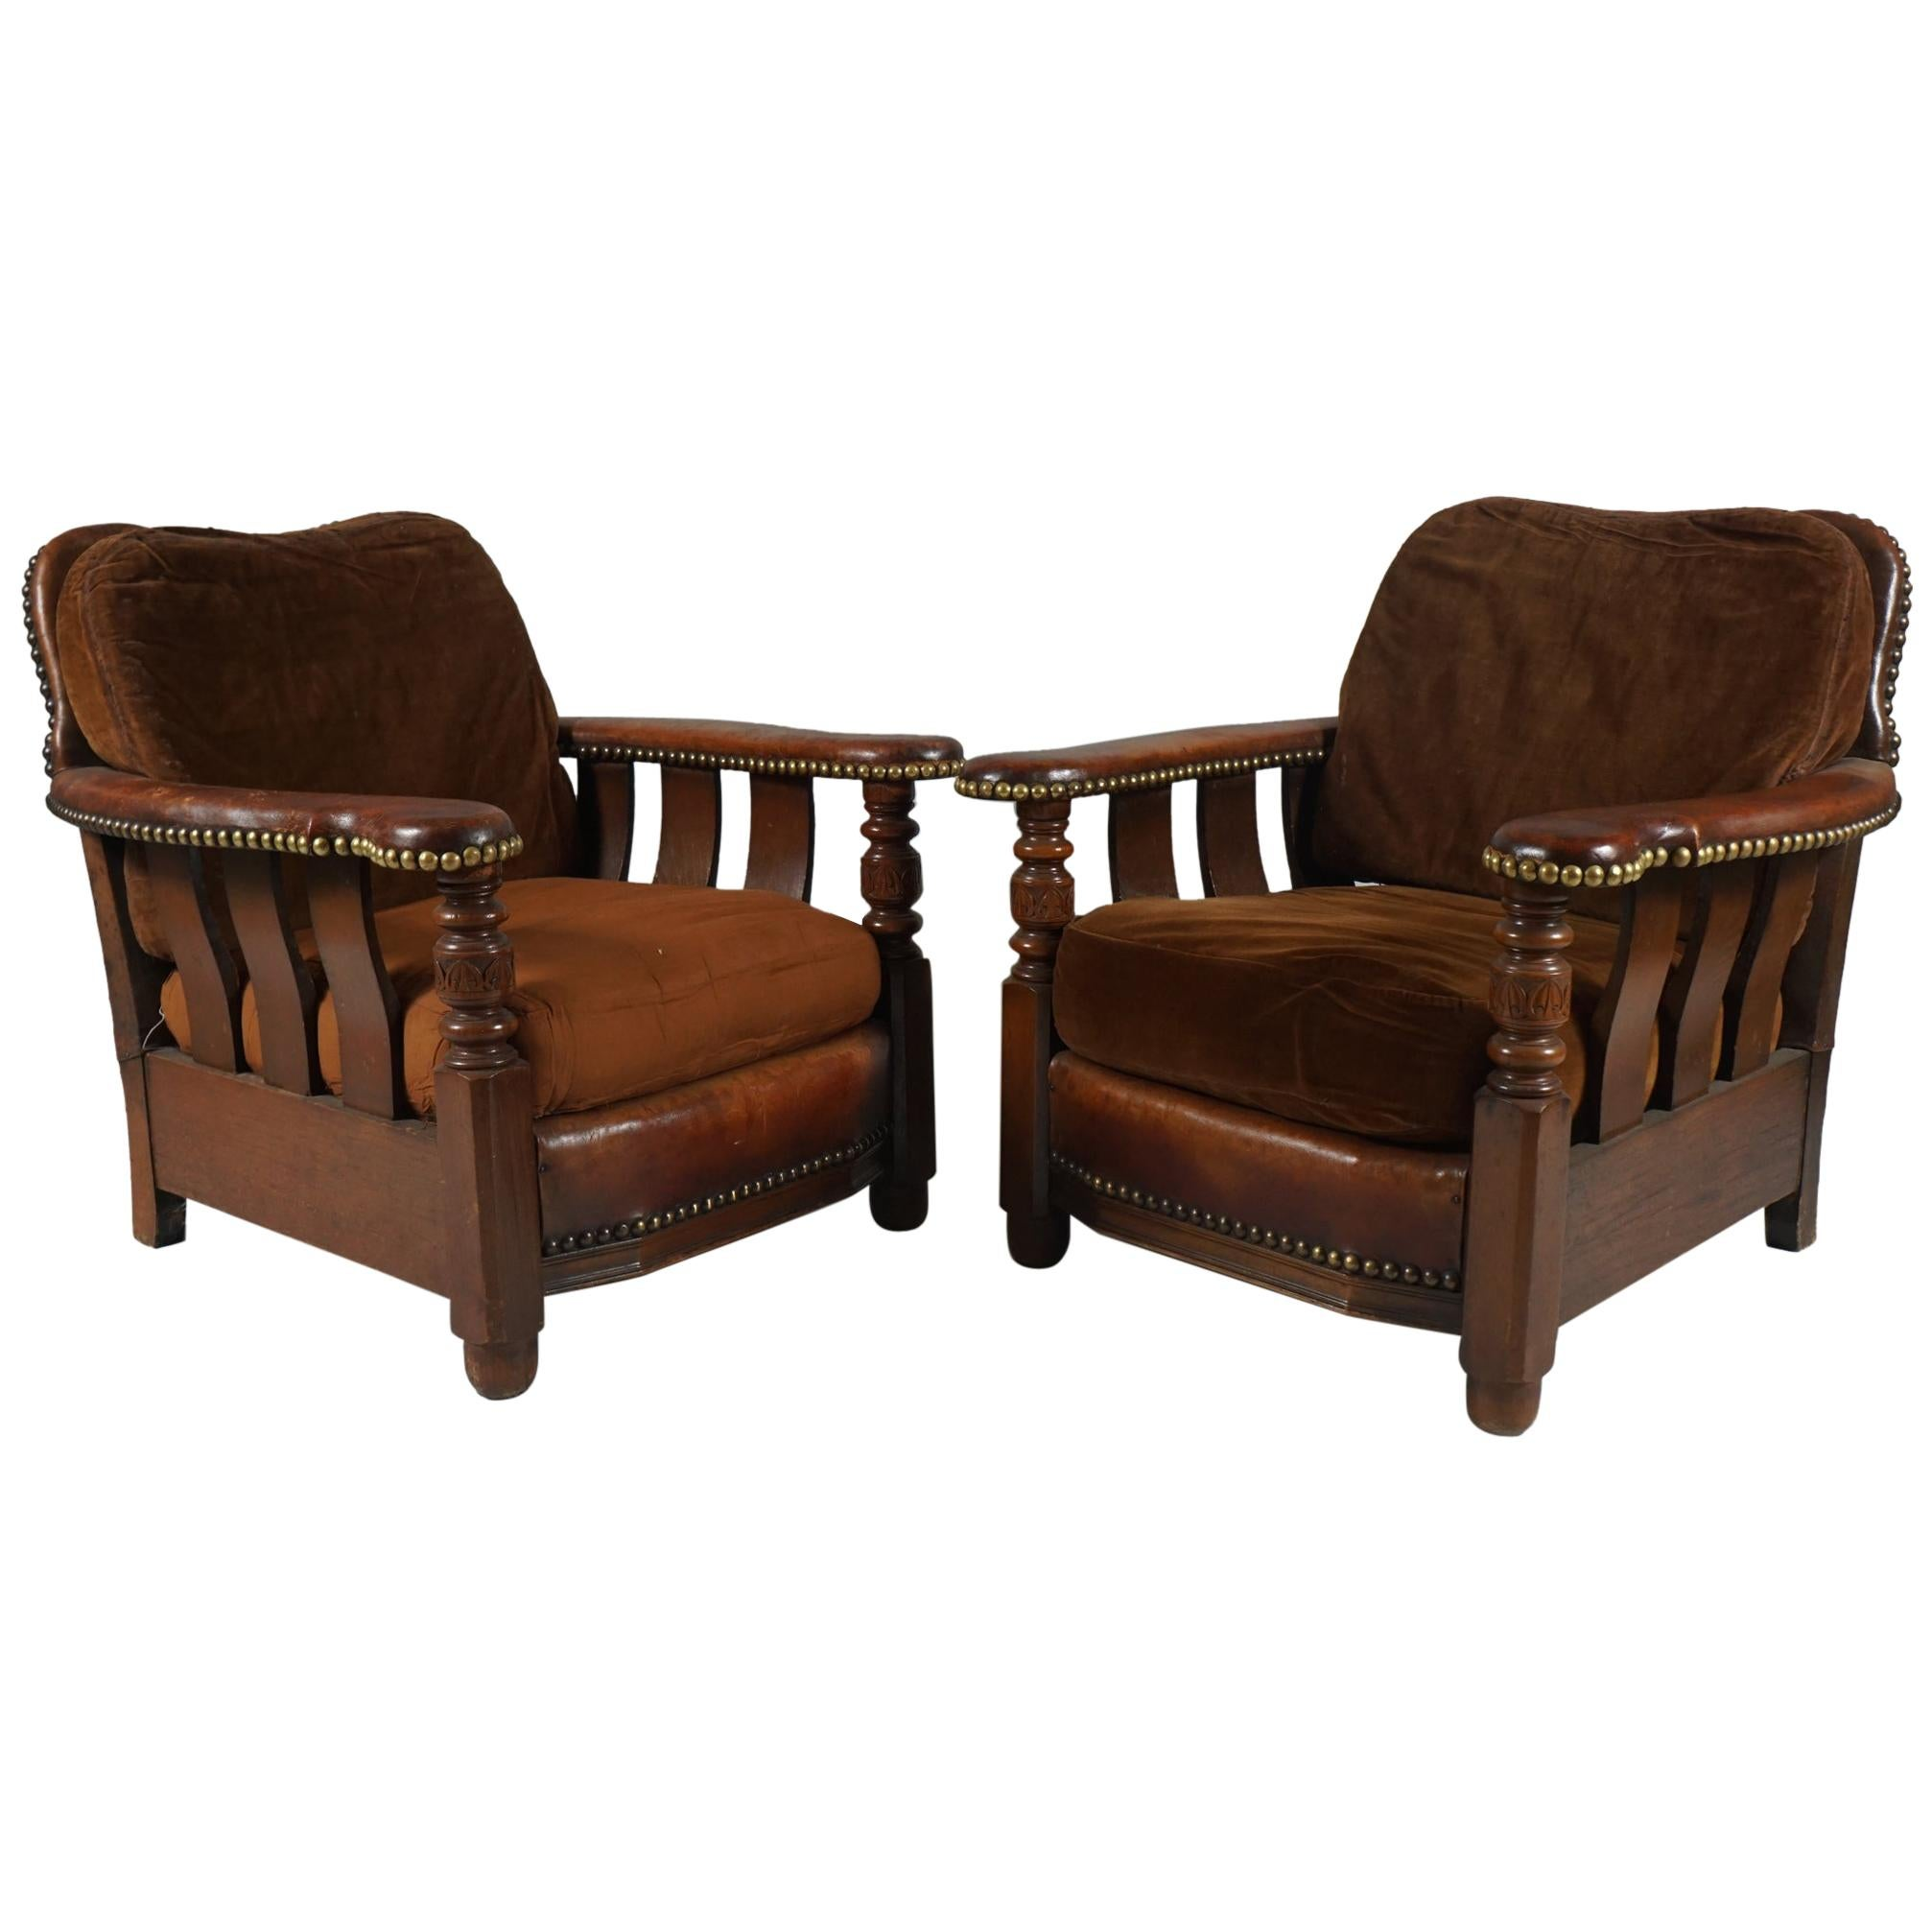 Pair of of Unusual Arts & Crafts Leather Armchairs